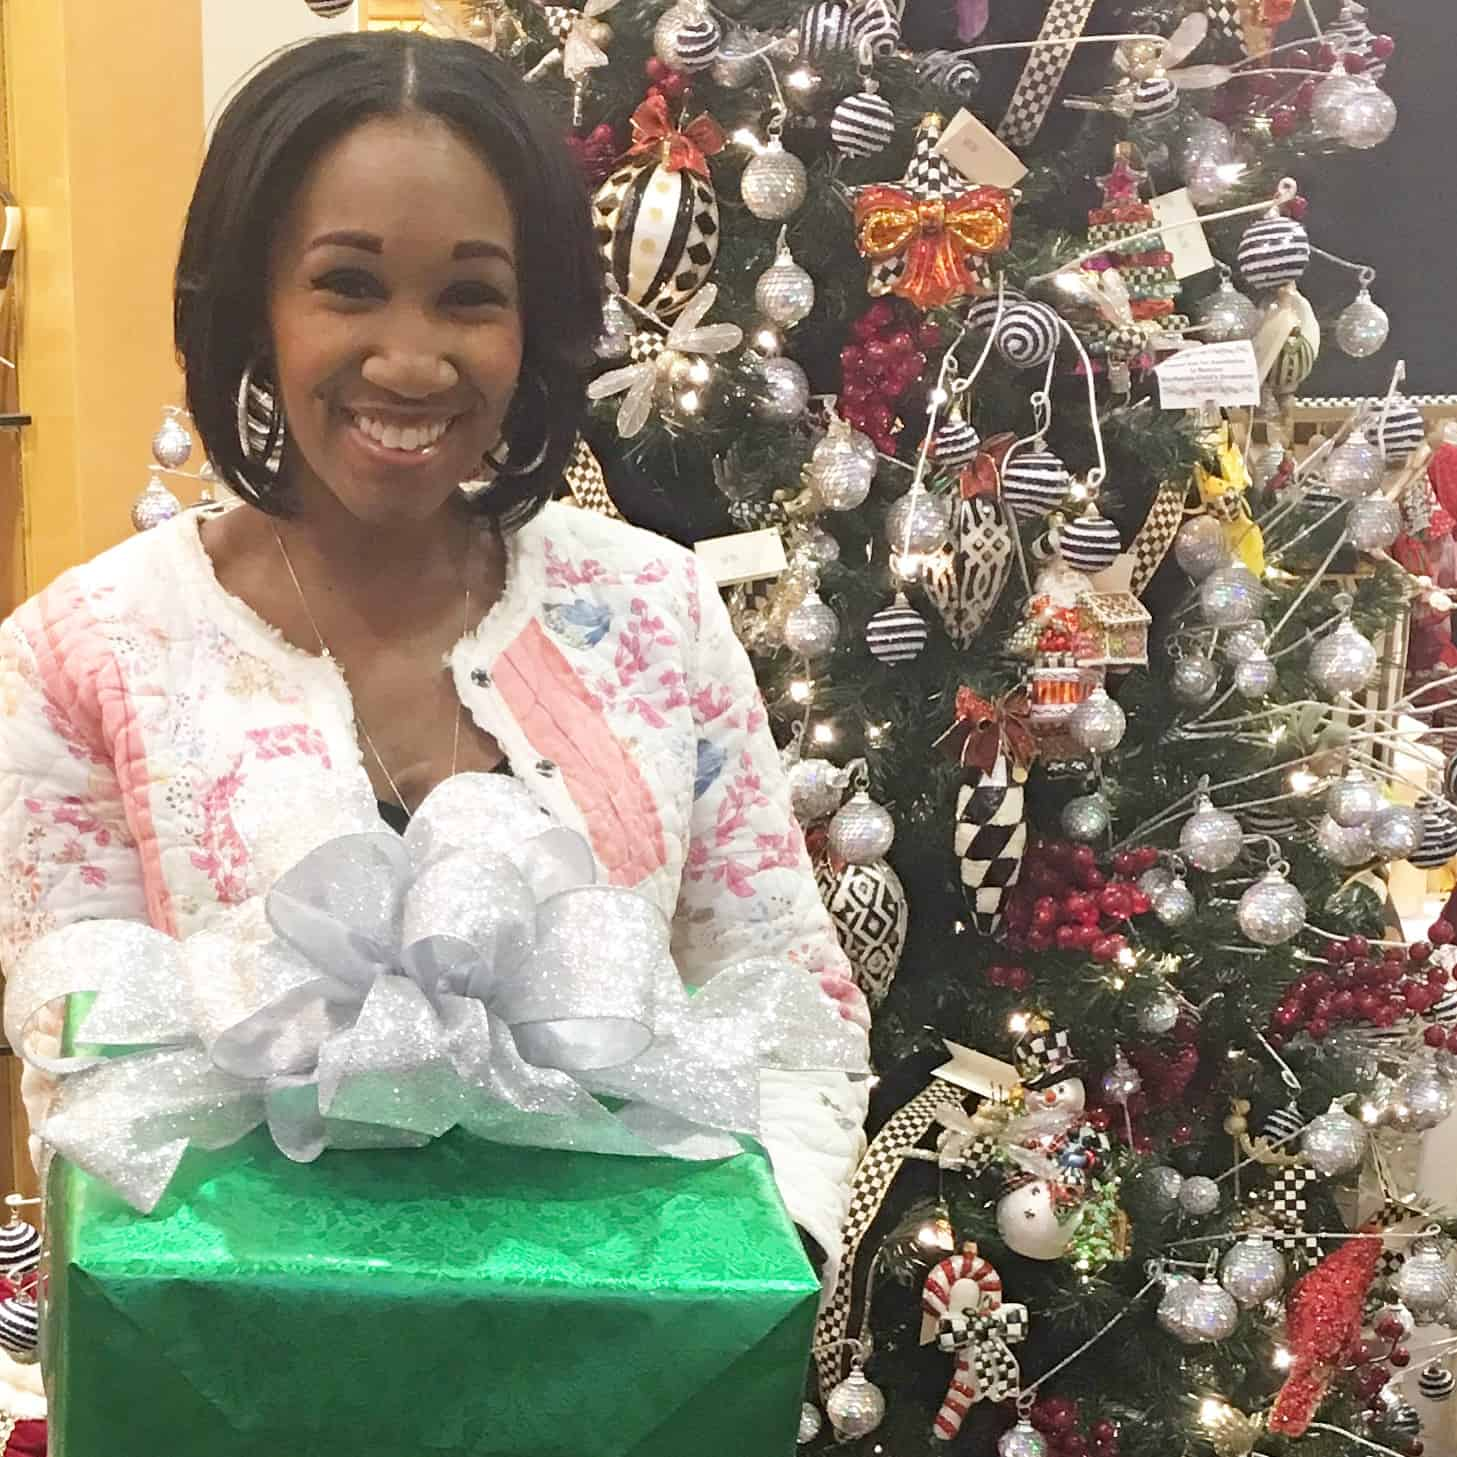 How To Gift Wrap Like A Holiday Pro With Shiny Wrapping Paper & A Fancy Bow!   Shaunda Necole